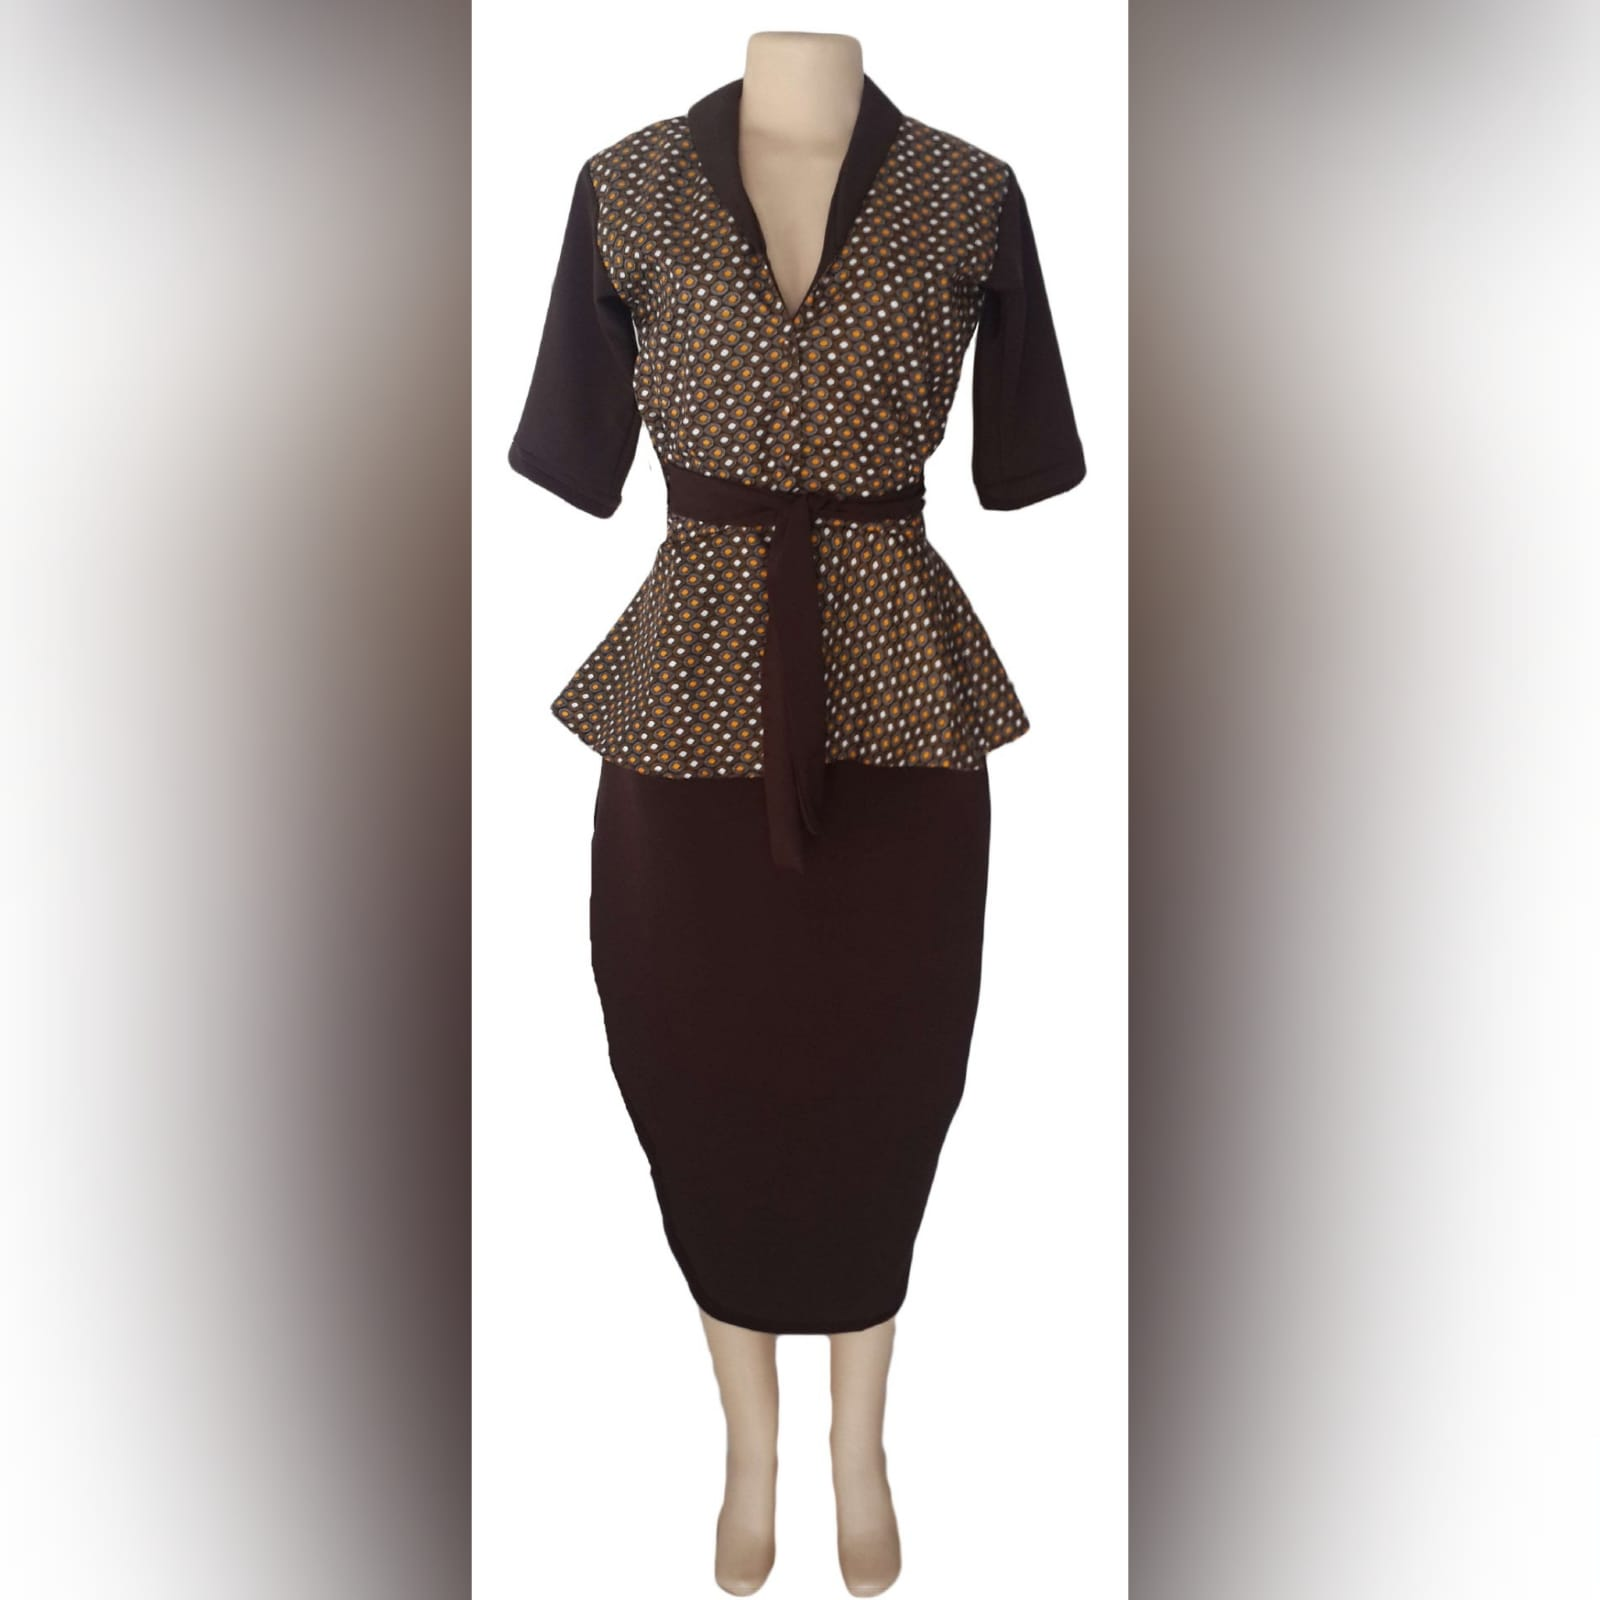 Xhosa traditional wear blouse and matching brown pencil skirt 4 a pencil skirt below the knee with a back slit. With a xhosa traditional blouse. Blouse with sleeves, collar and belt in brown matching the skirt.